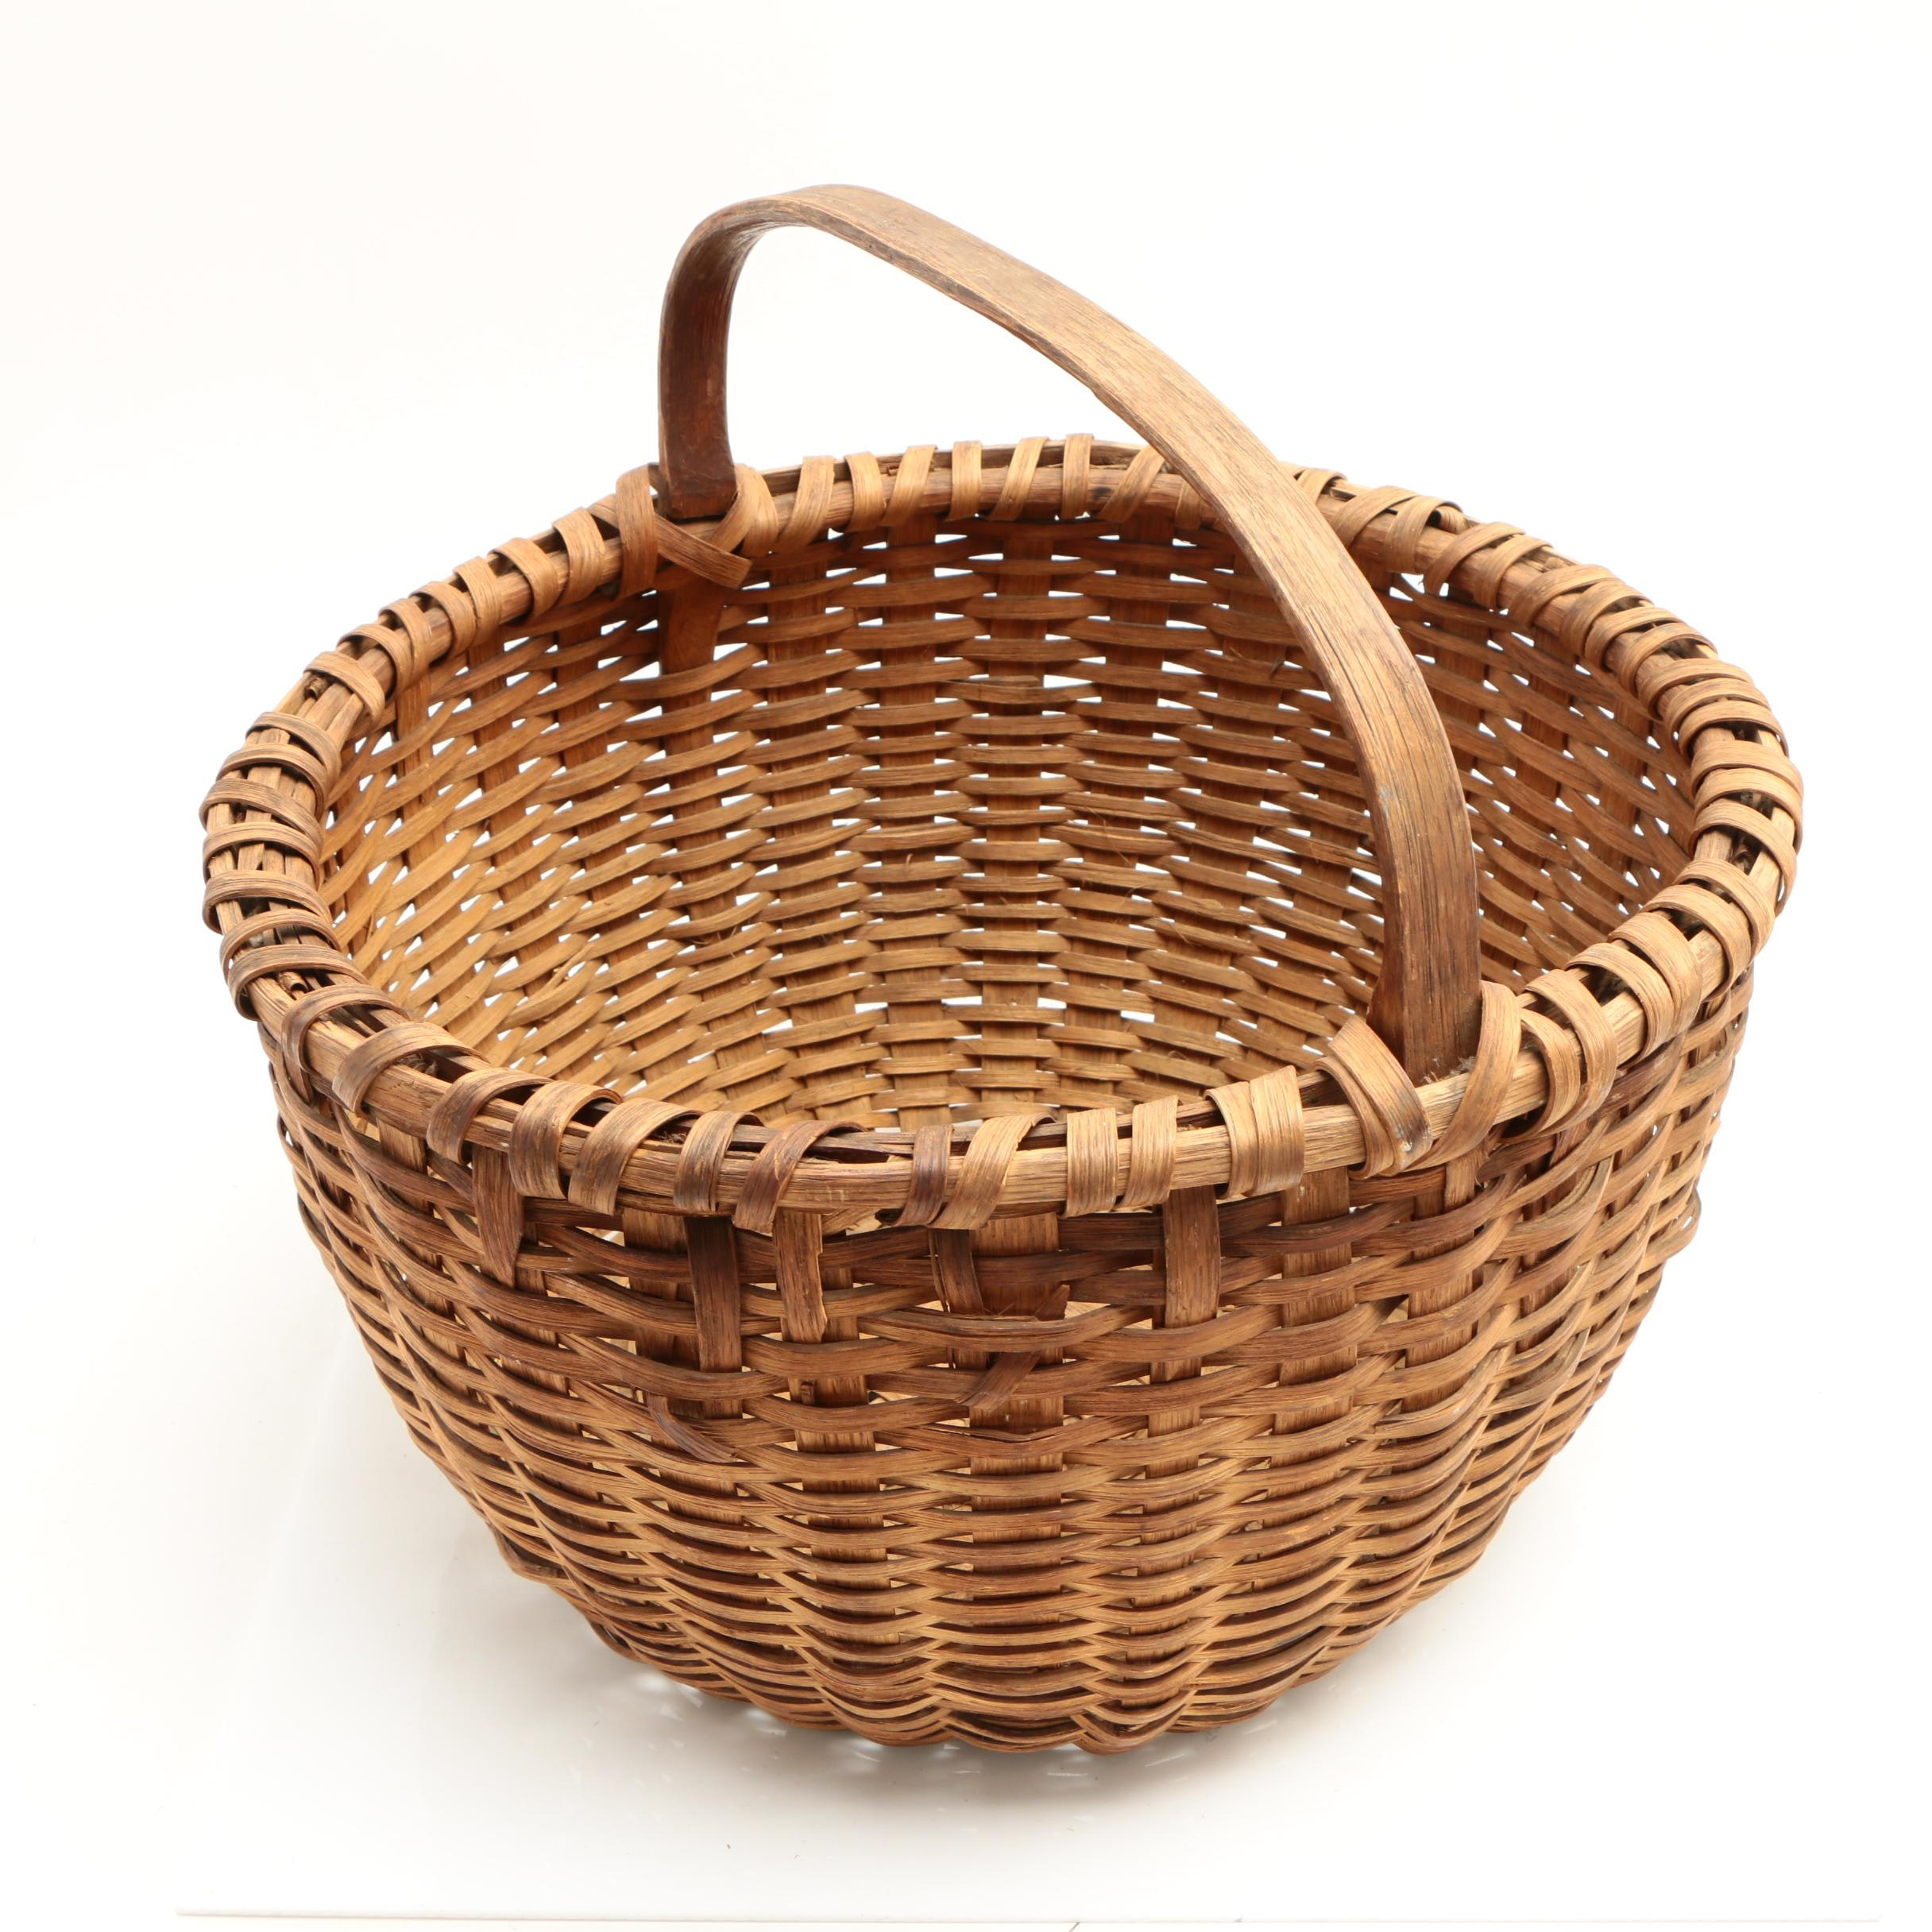 New England Splint Woven Round Handled Basket, Early 20th Century